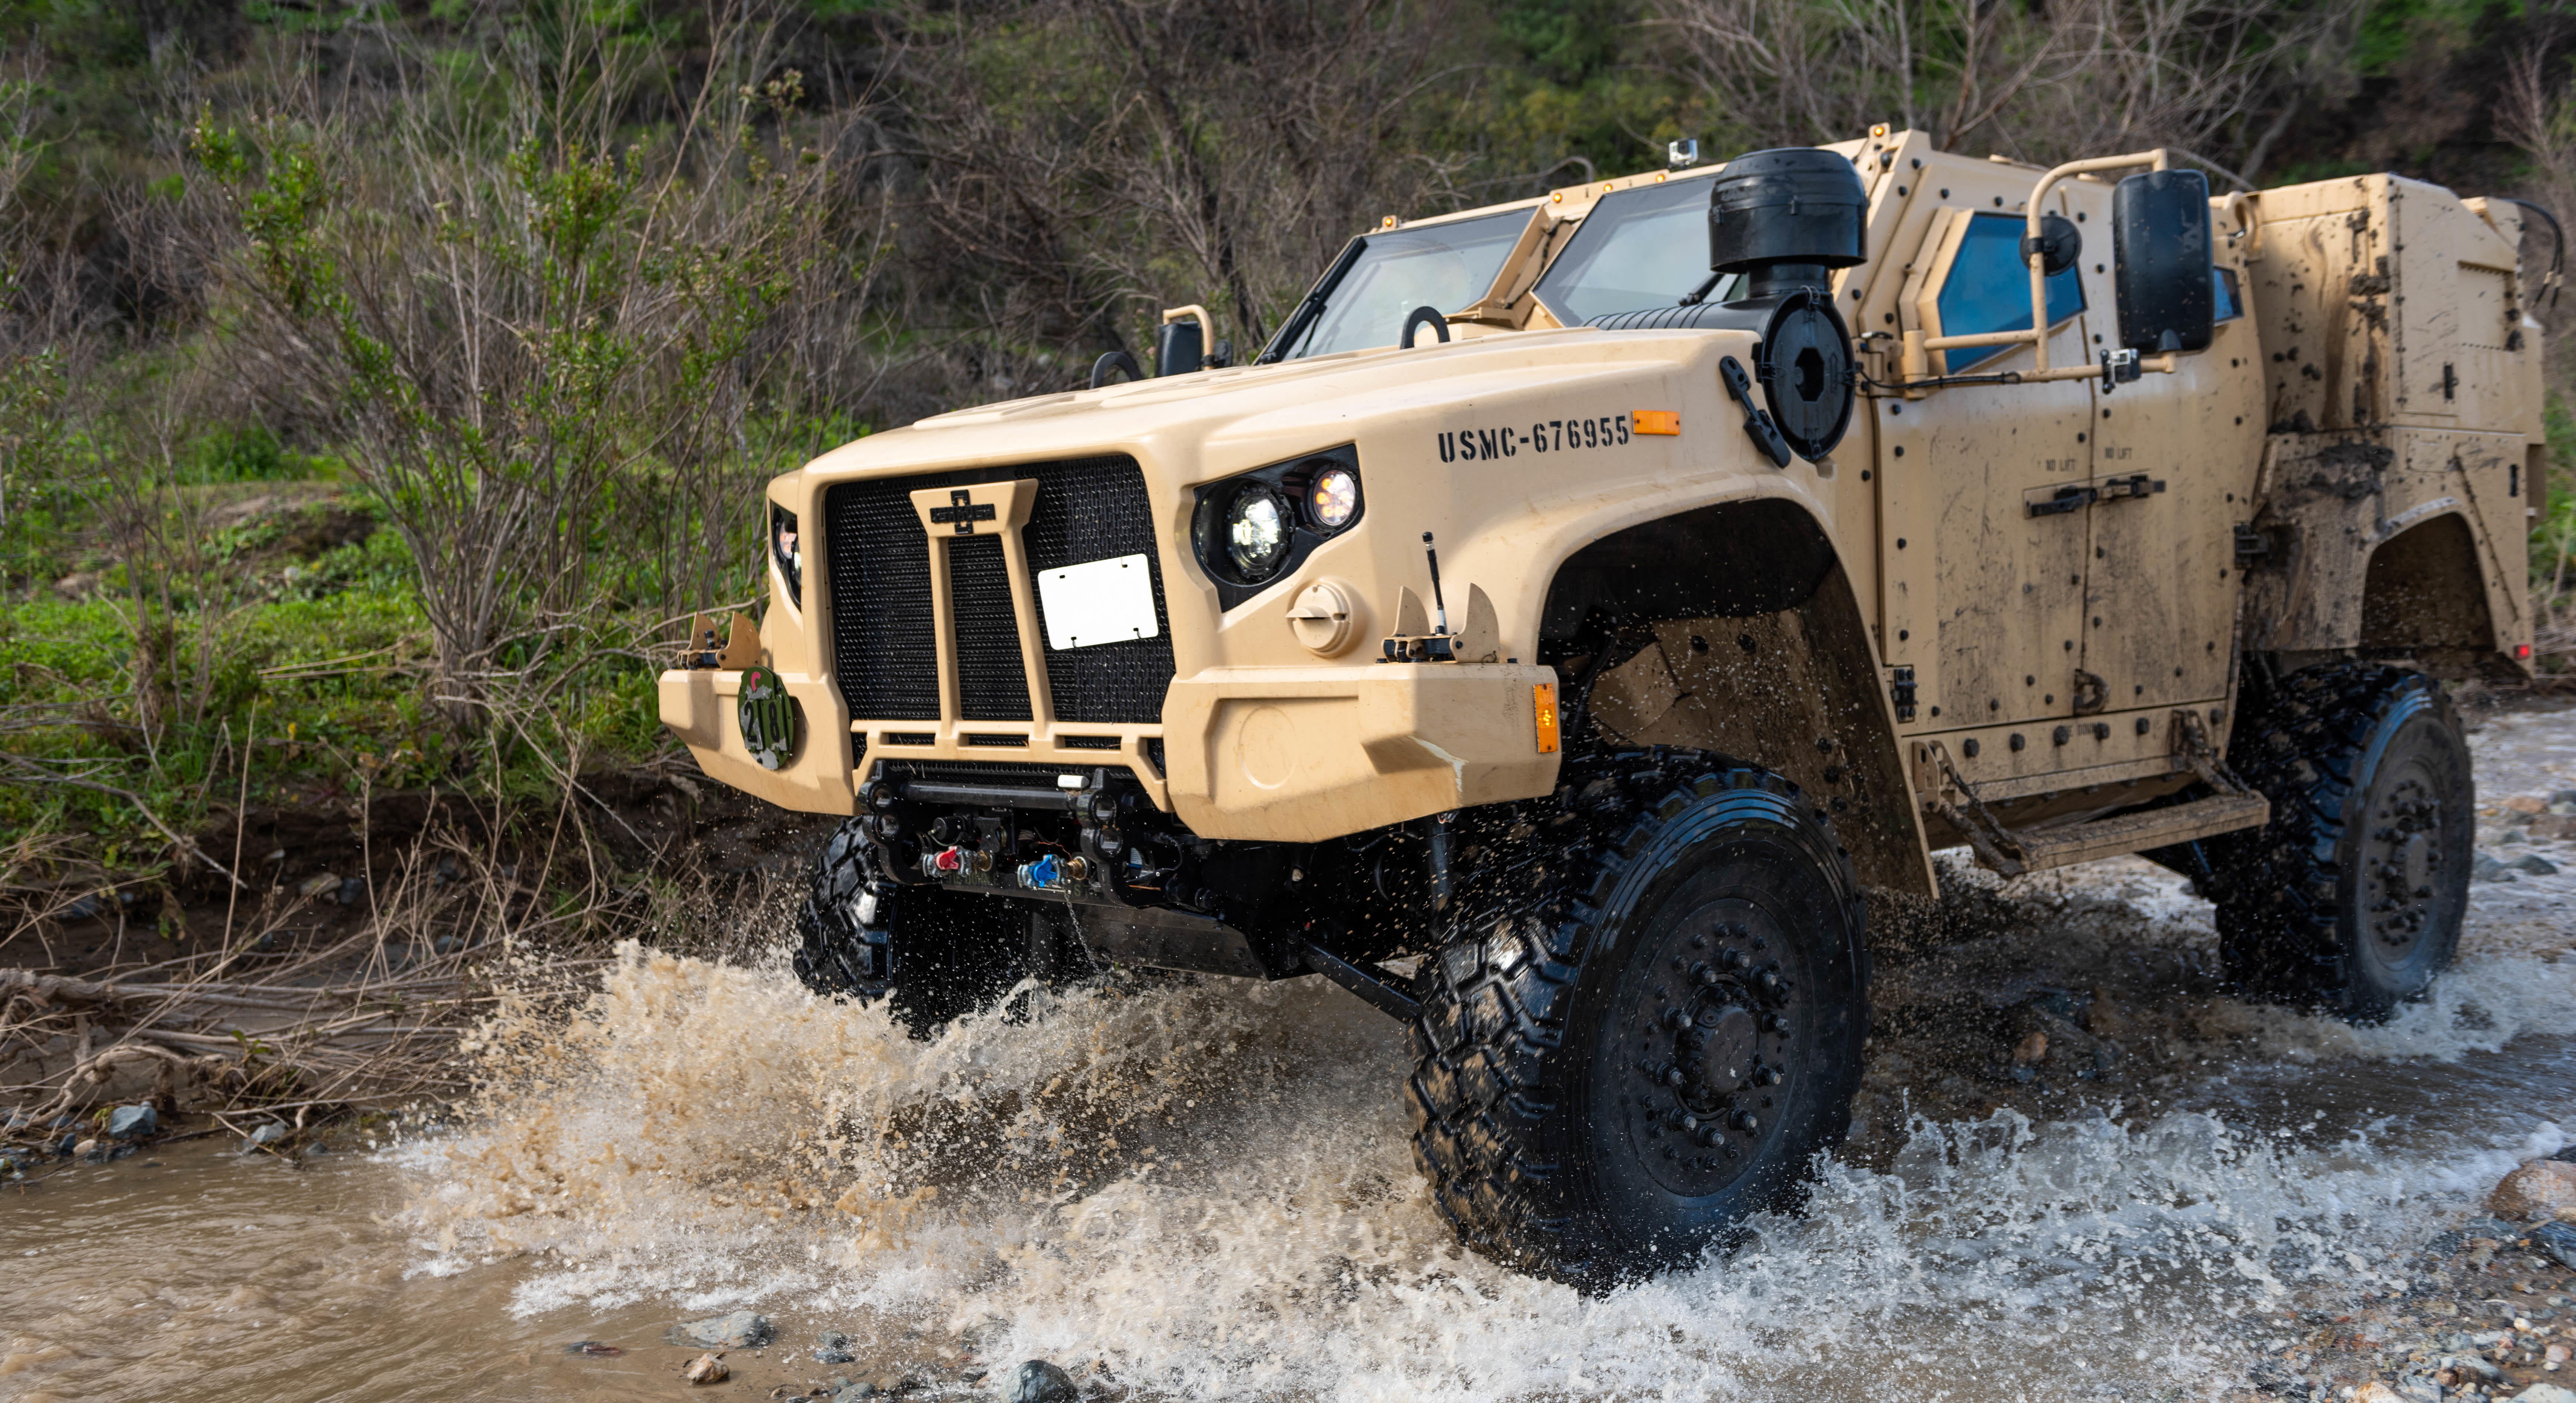 A Joint Light Tactical Vehicle displays its overall capabilities during a live demonstration at the School of Infantry West, Marine Corps Base Camp Pendleton, California. (Sgt. Timothy R. Smithers/Marine Corps)